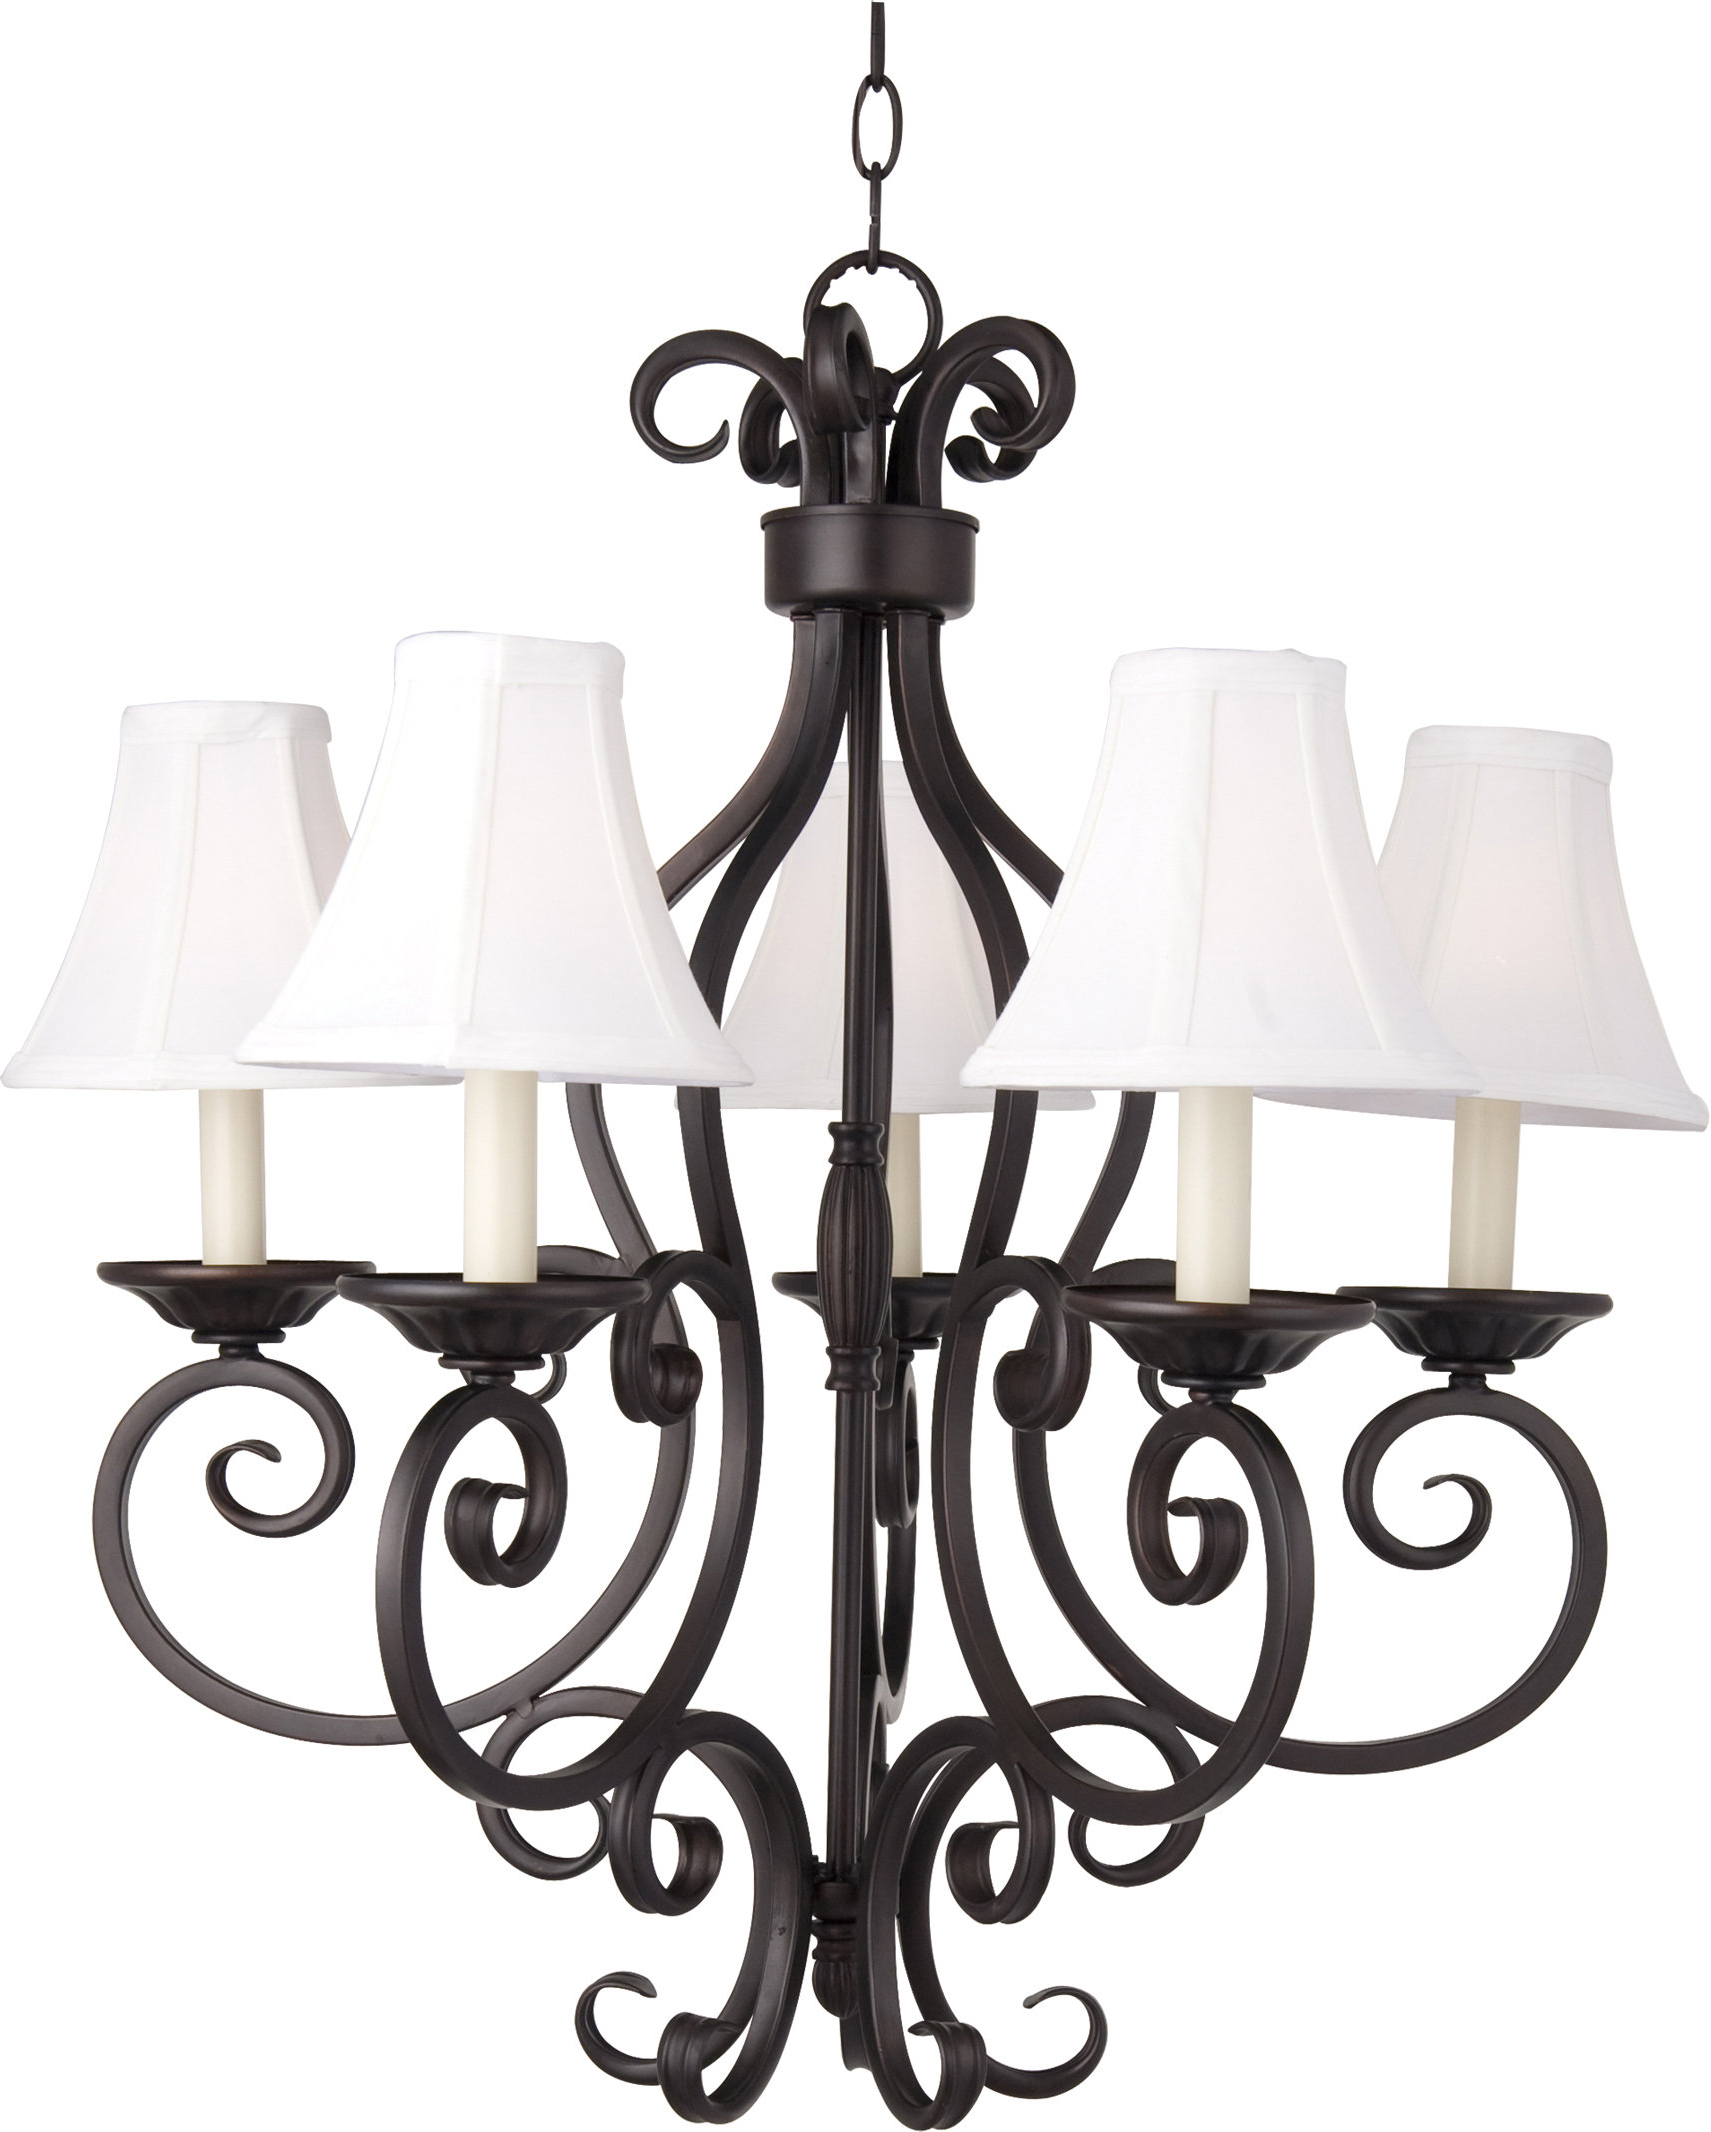 Widely Used Gaines 5 Light Shaded Chandeliers Pertaining To Anella 5 Light Shaded Chandelier (View 25 of 25)